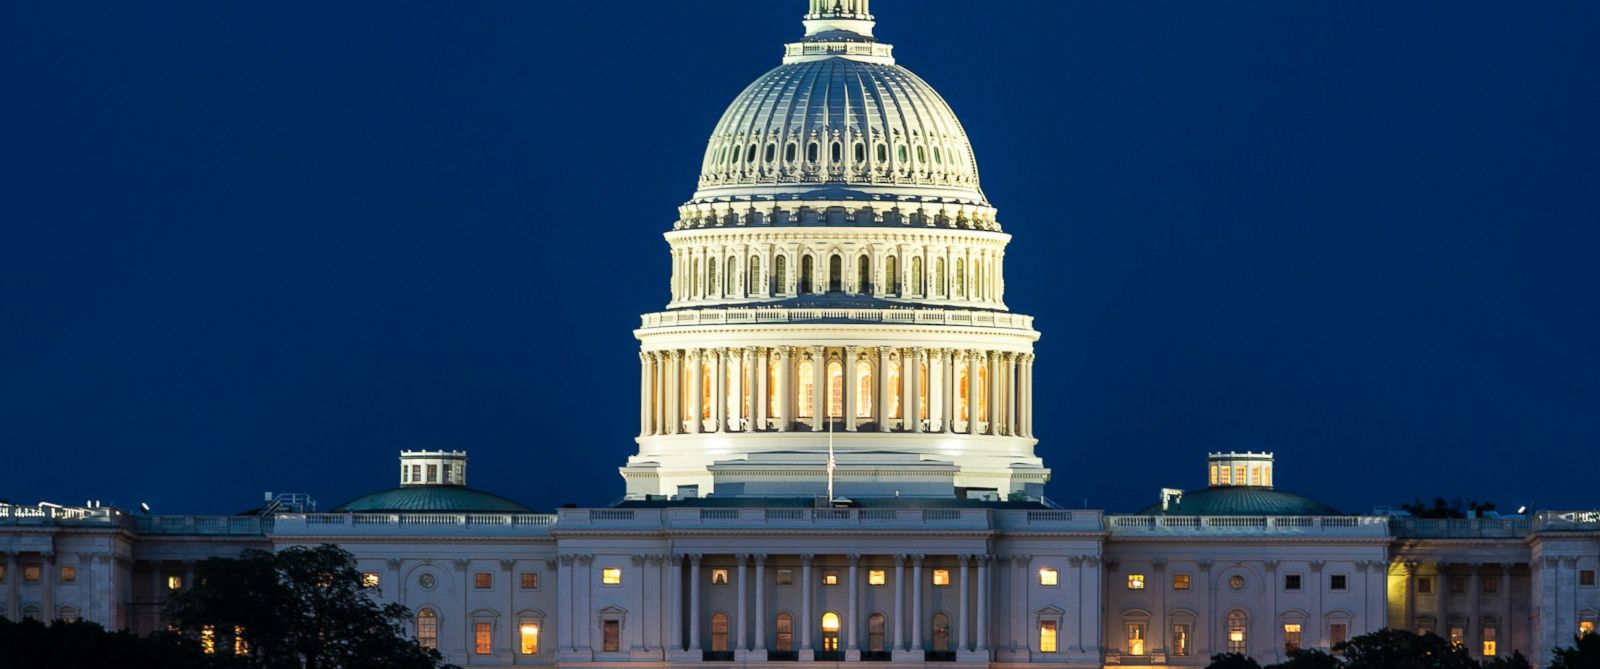 PHOTO: The United States Capitol Building is pictured on June 4, 2013 in Washington, D.C.